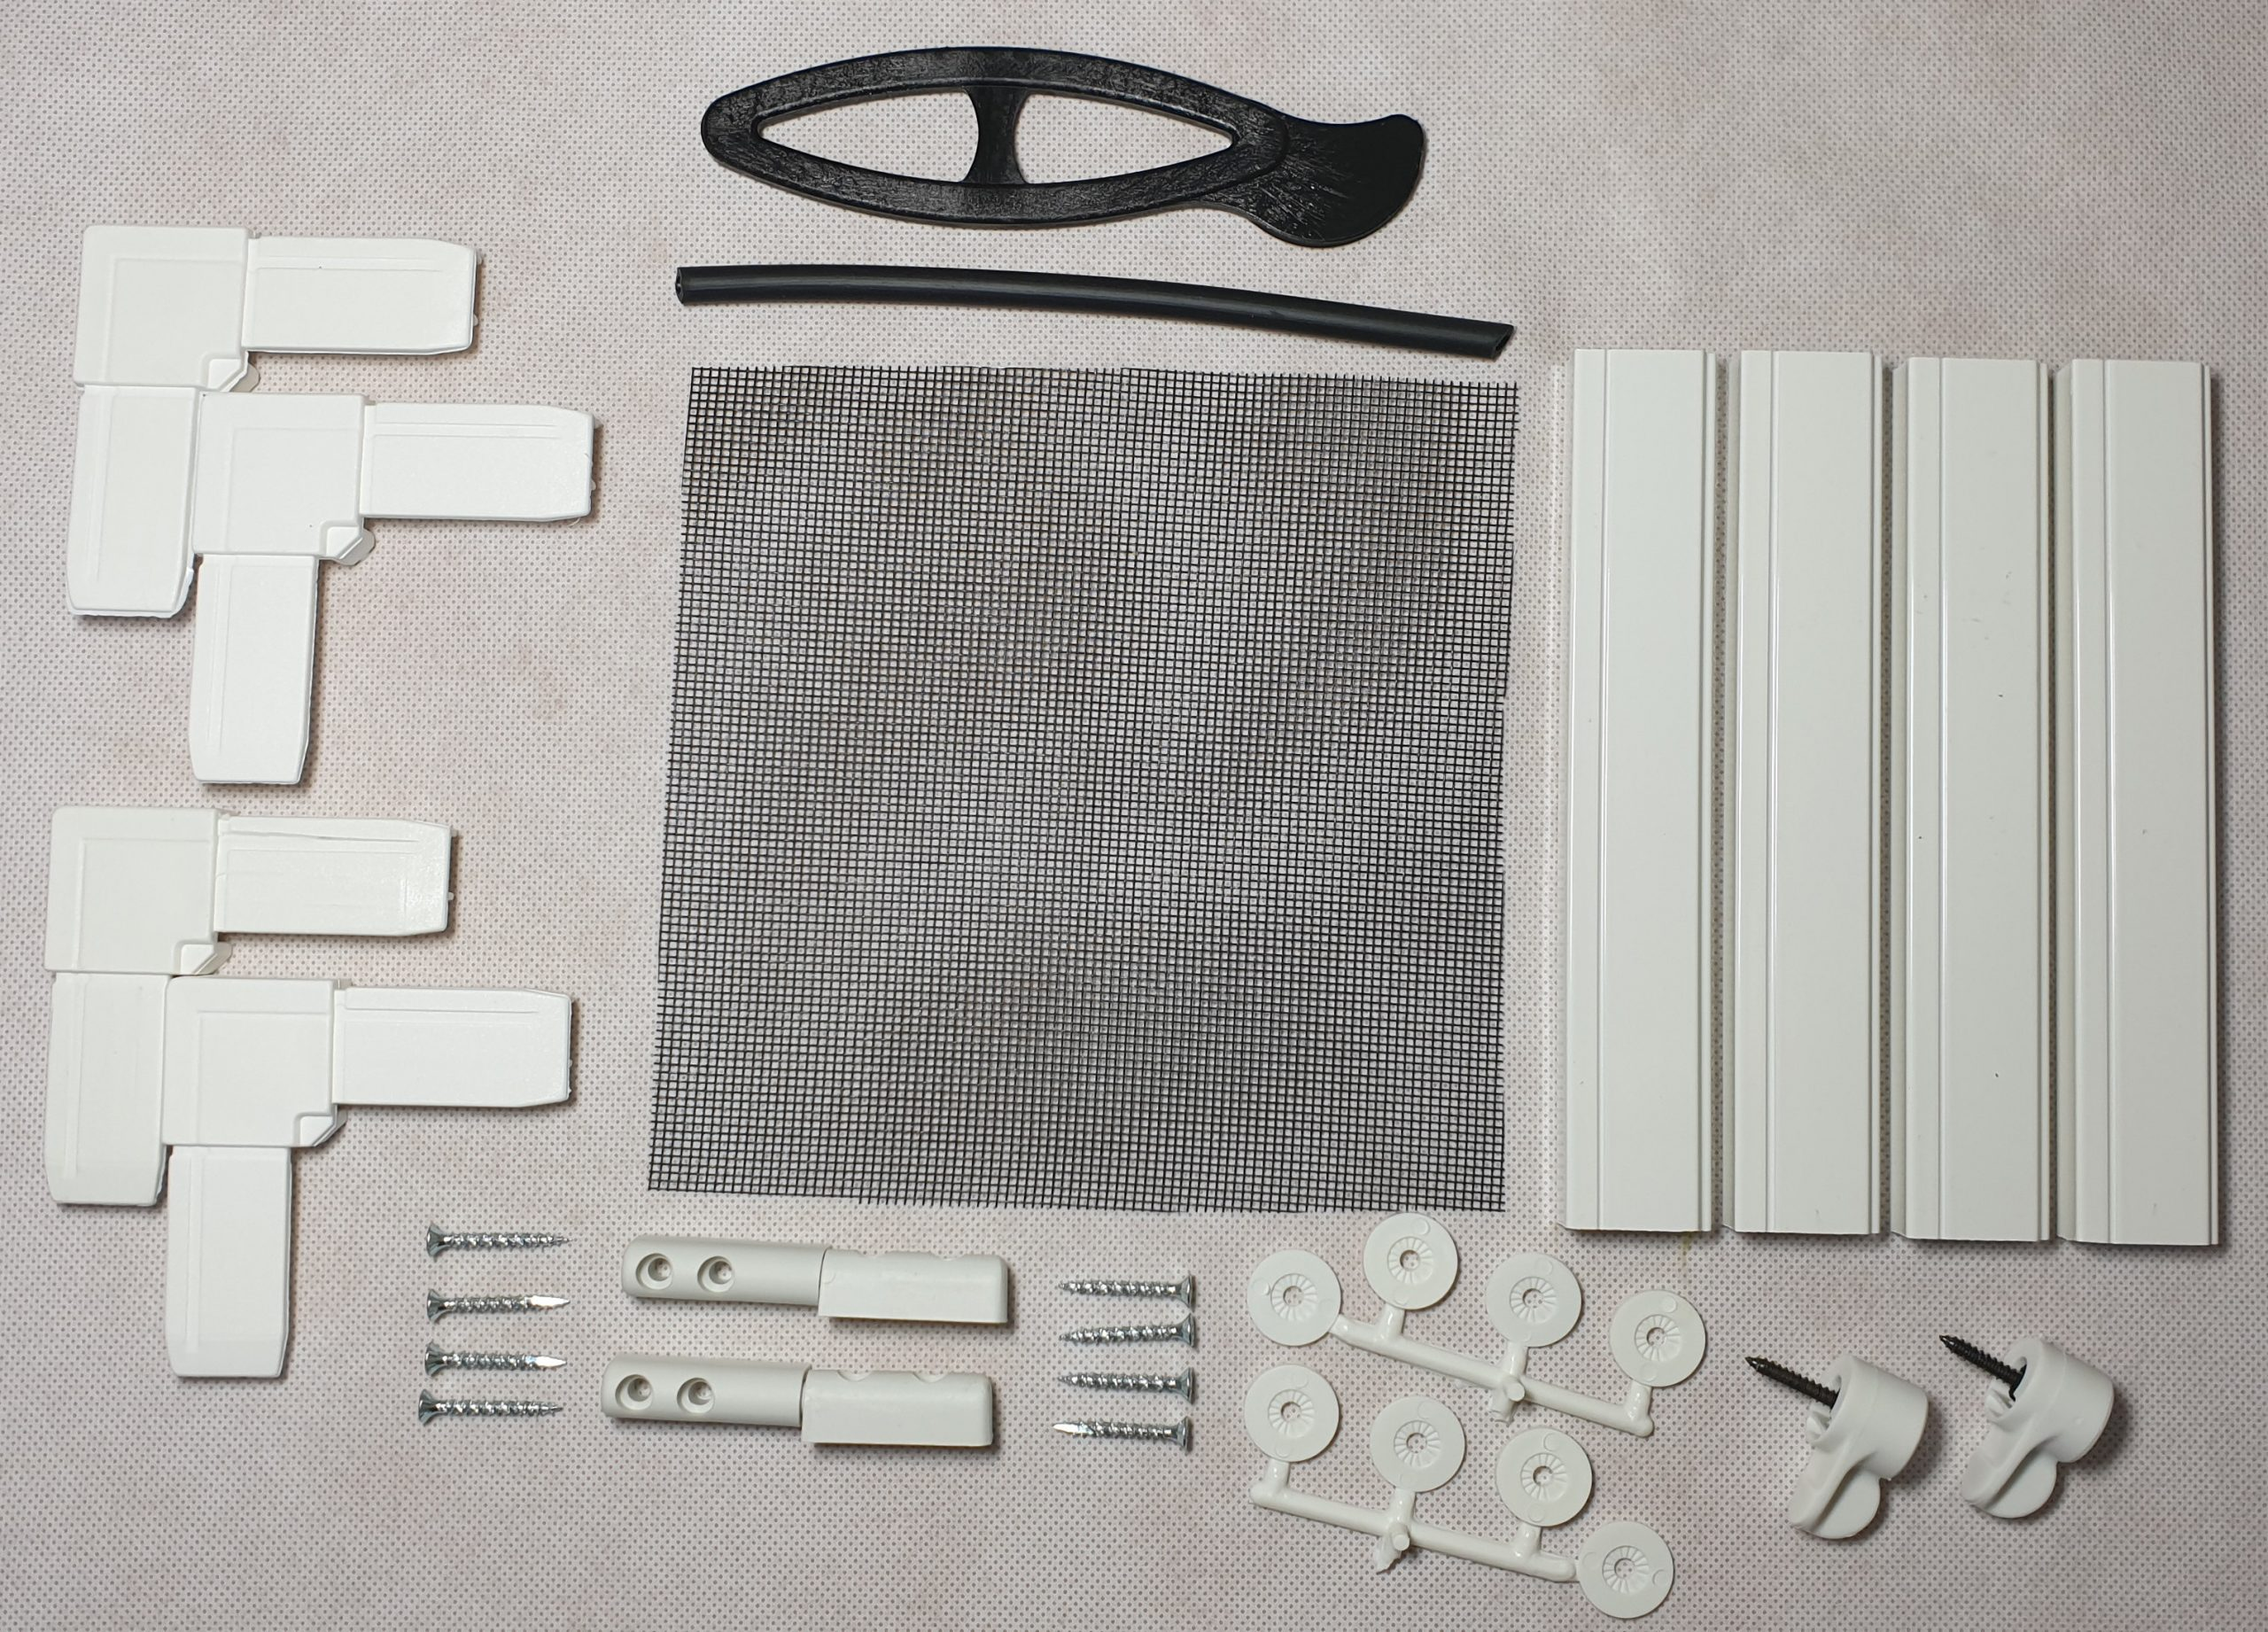 Hinged fly screen kit components